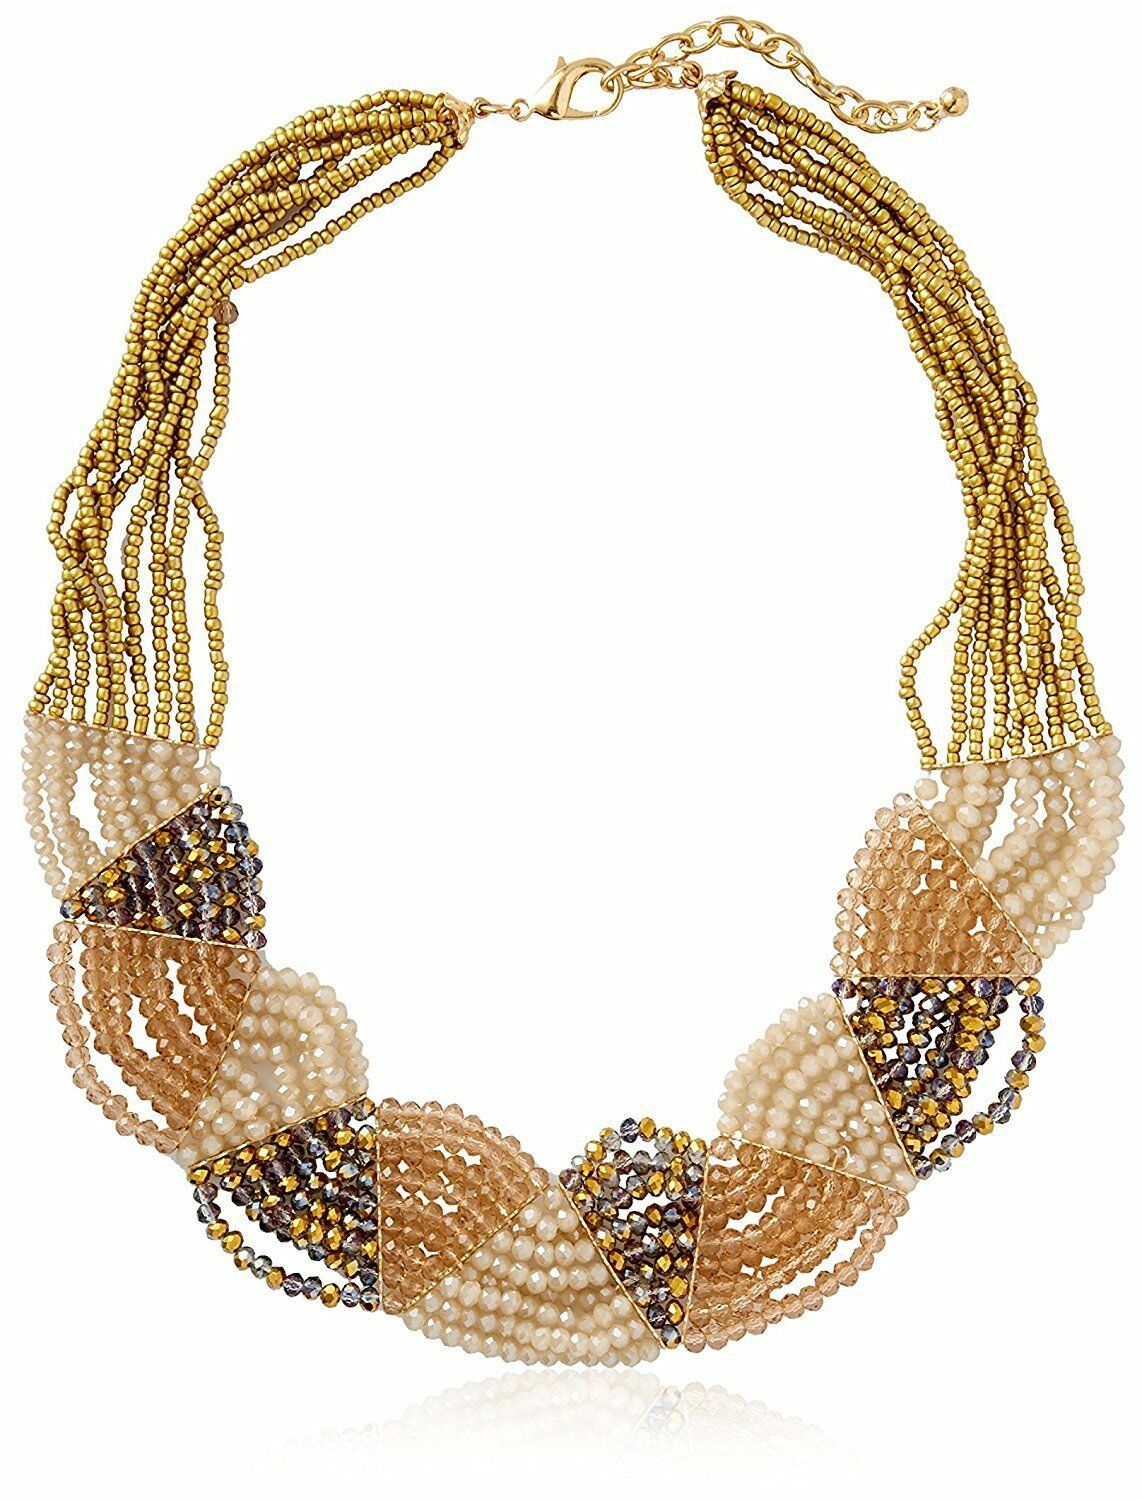 Leslie Danzis Gold Plated Multi Strand Iridescent Beaded Collar Bib Necklace NWT